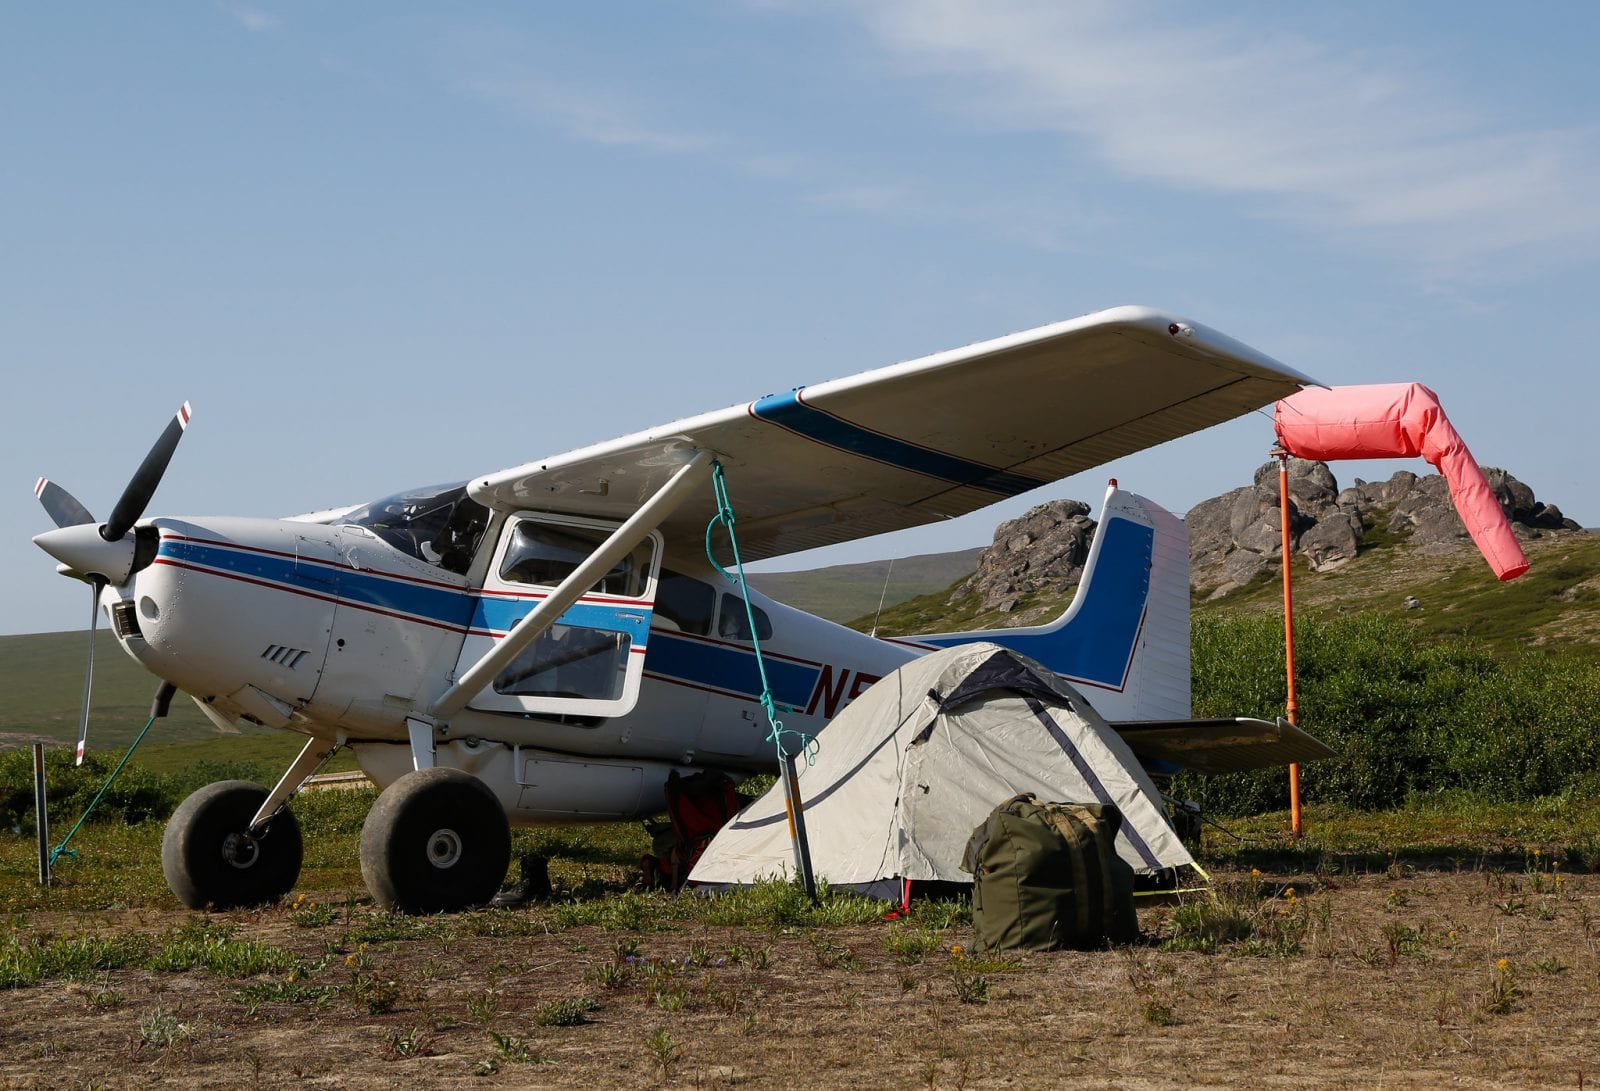 Image of a charter plan and tent underneath the plane wing at Serpentine Hot Springs